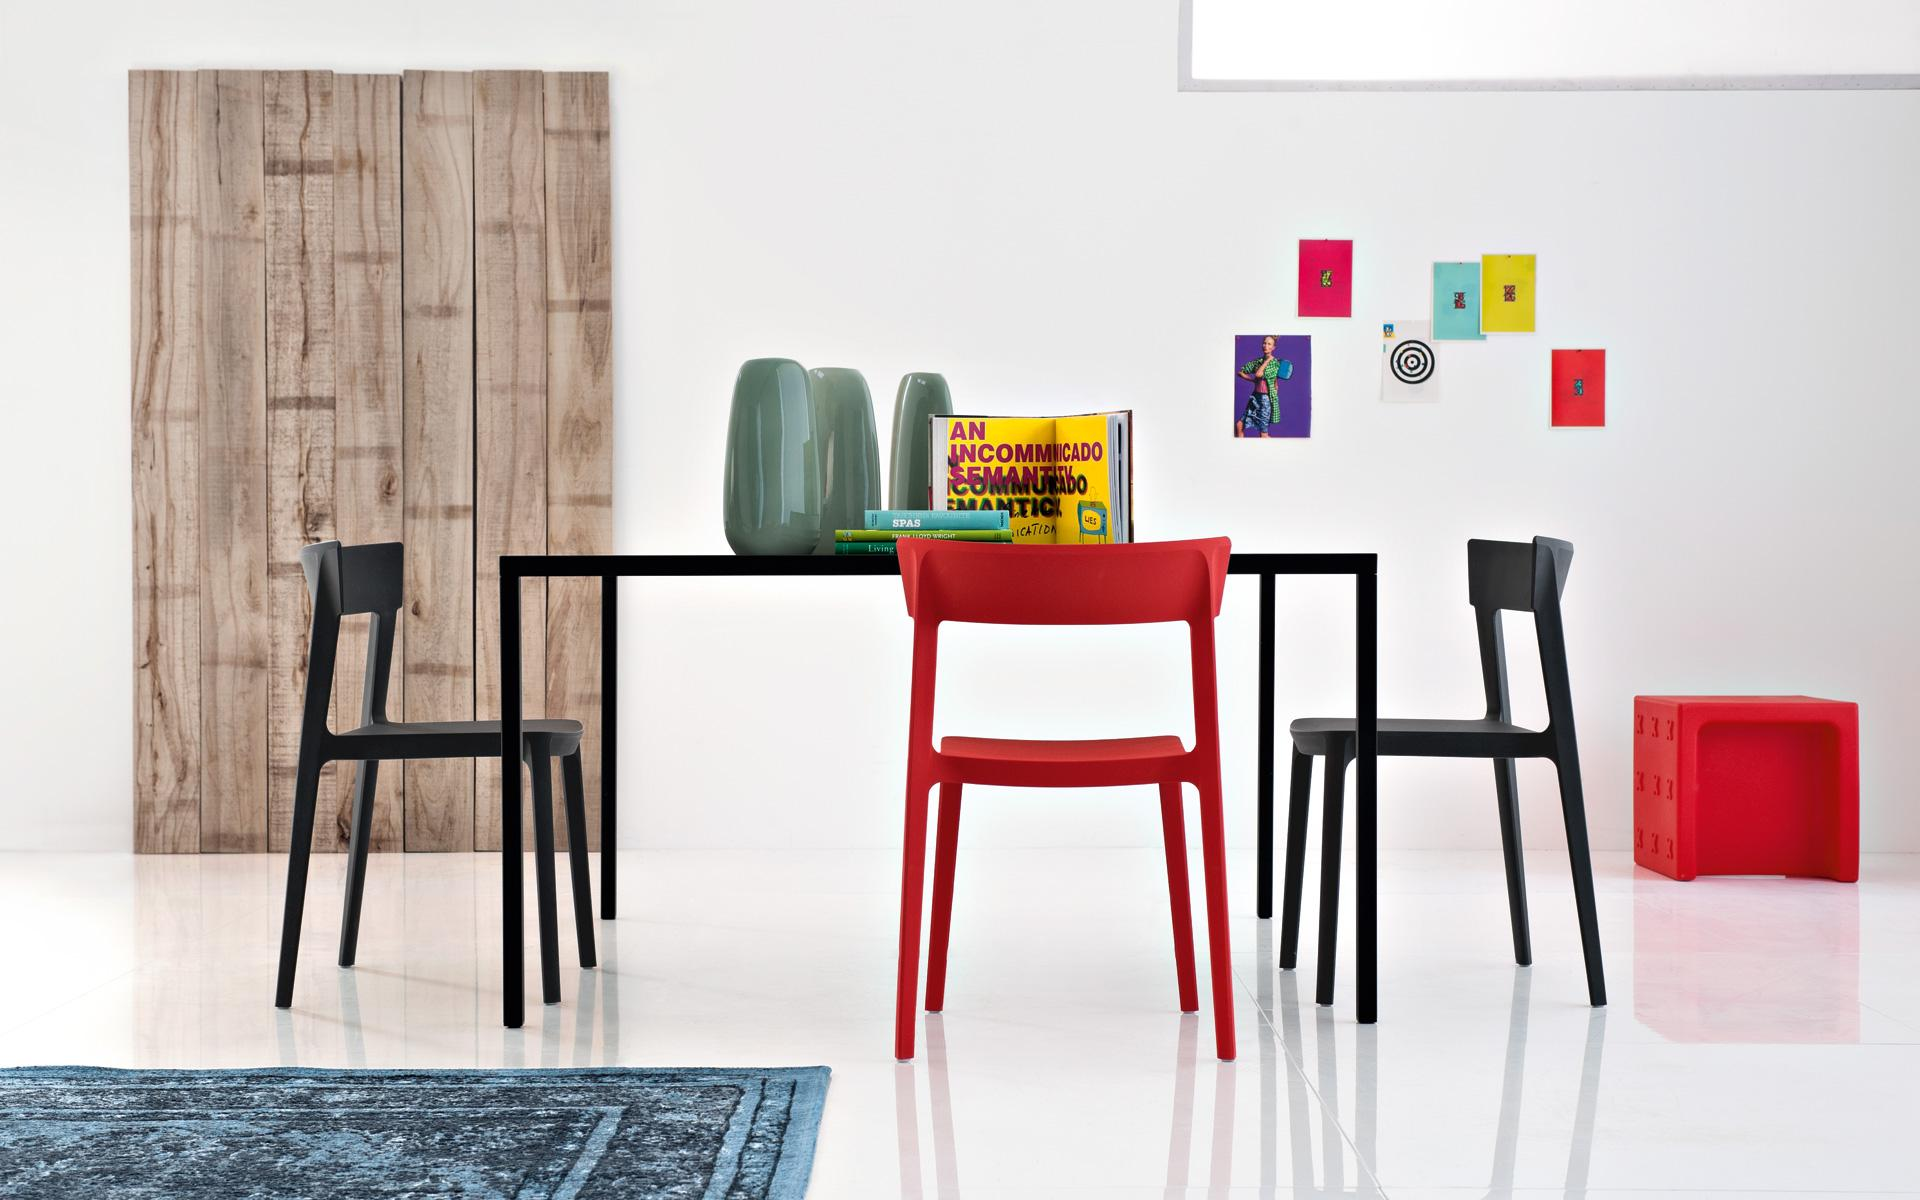 Sedia Impilabile Skin - Calligaris – Pozzoli Living & Moving